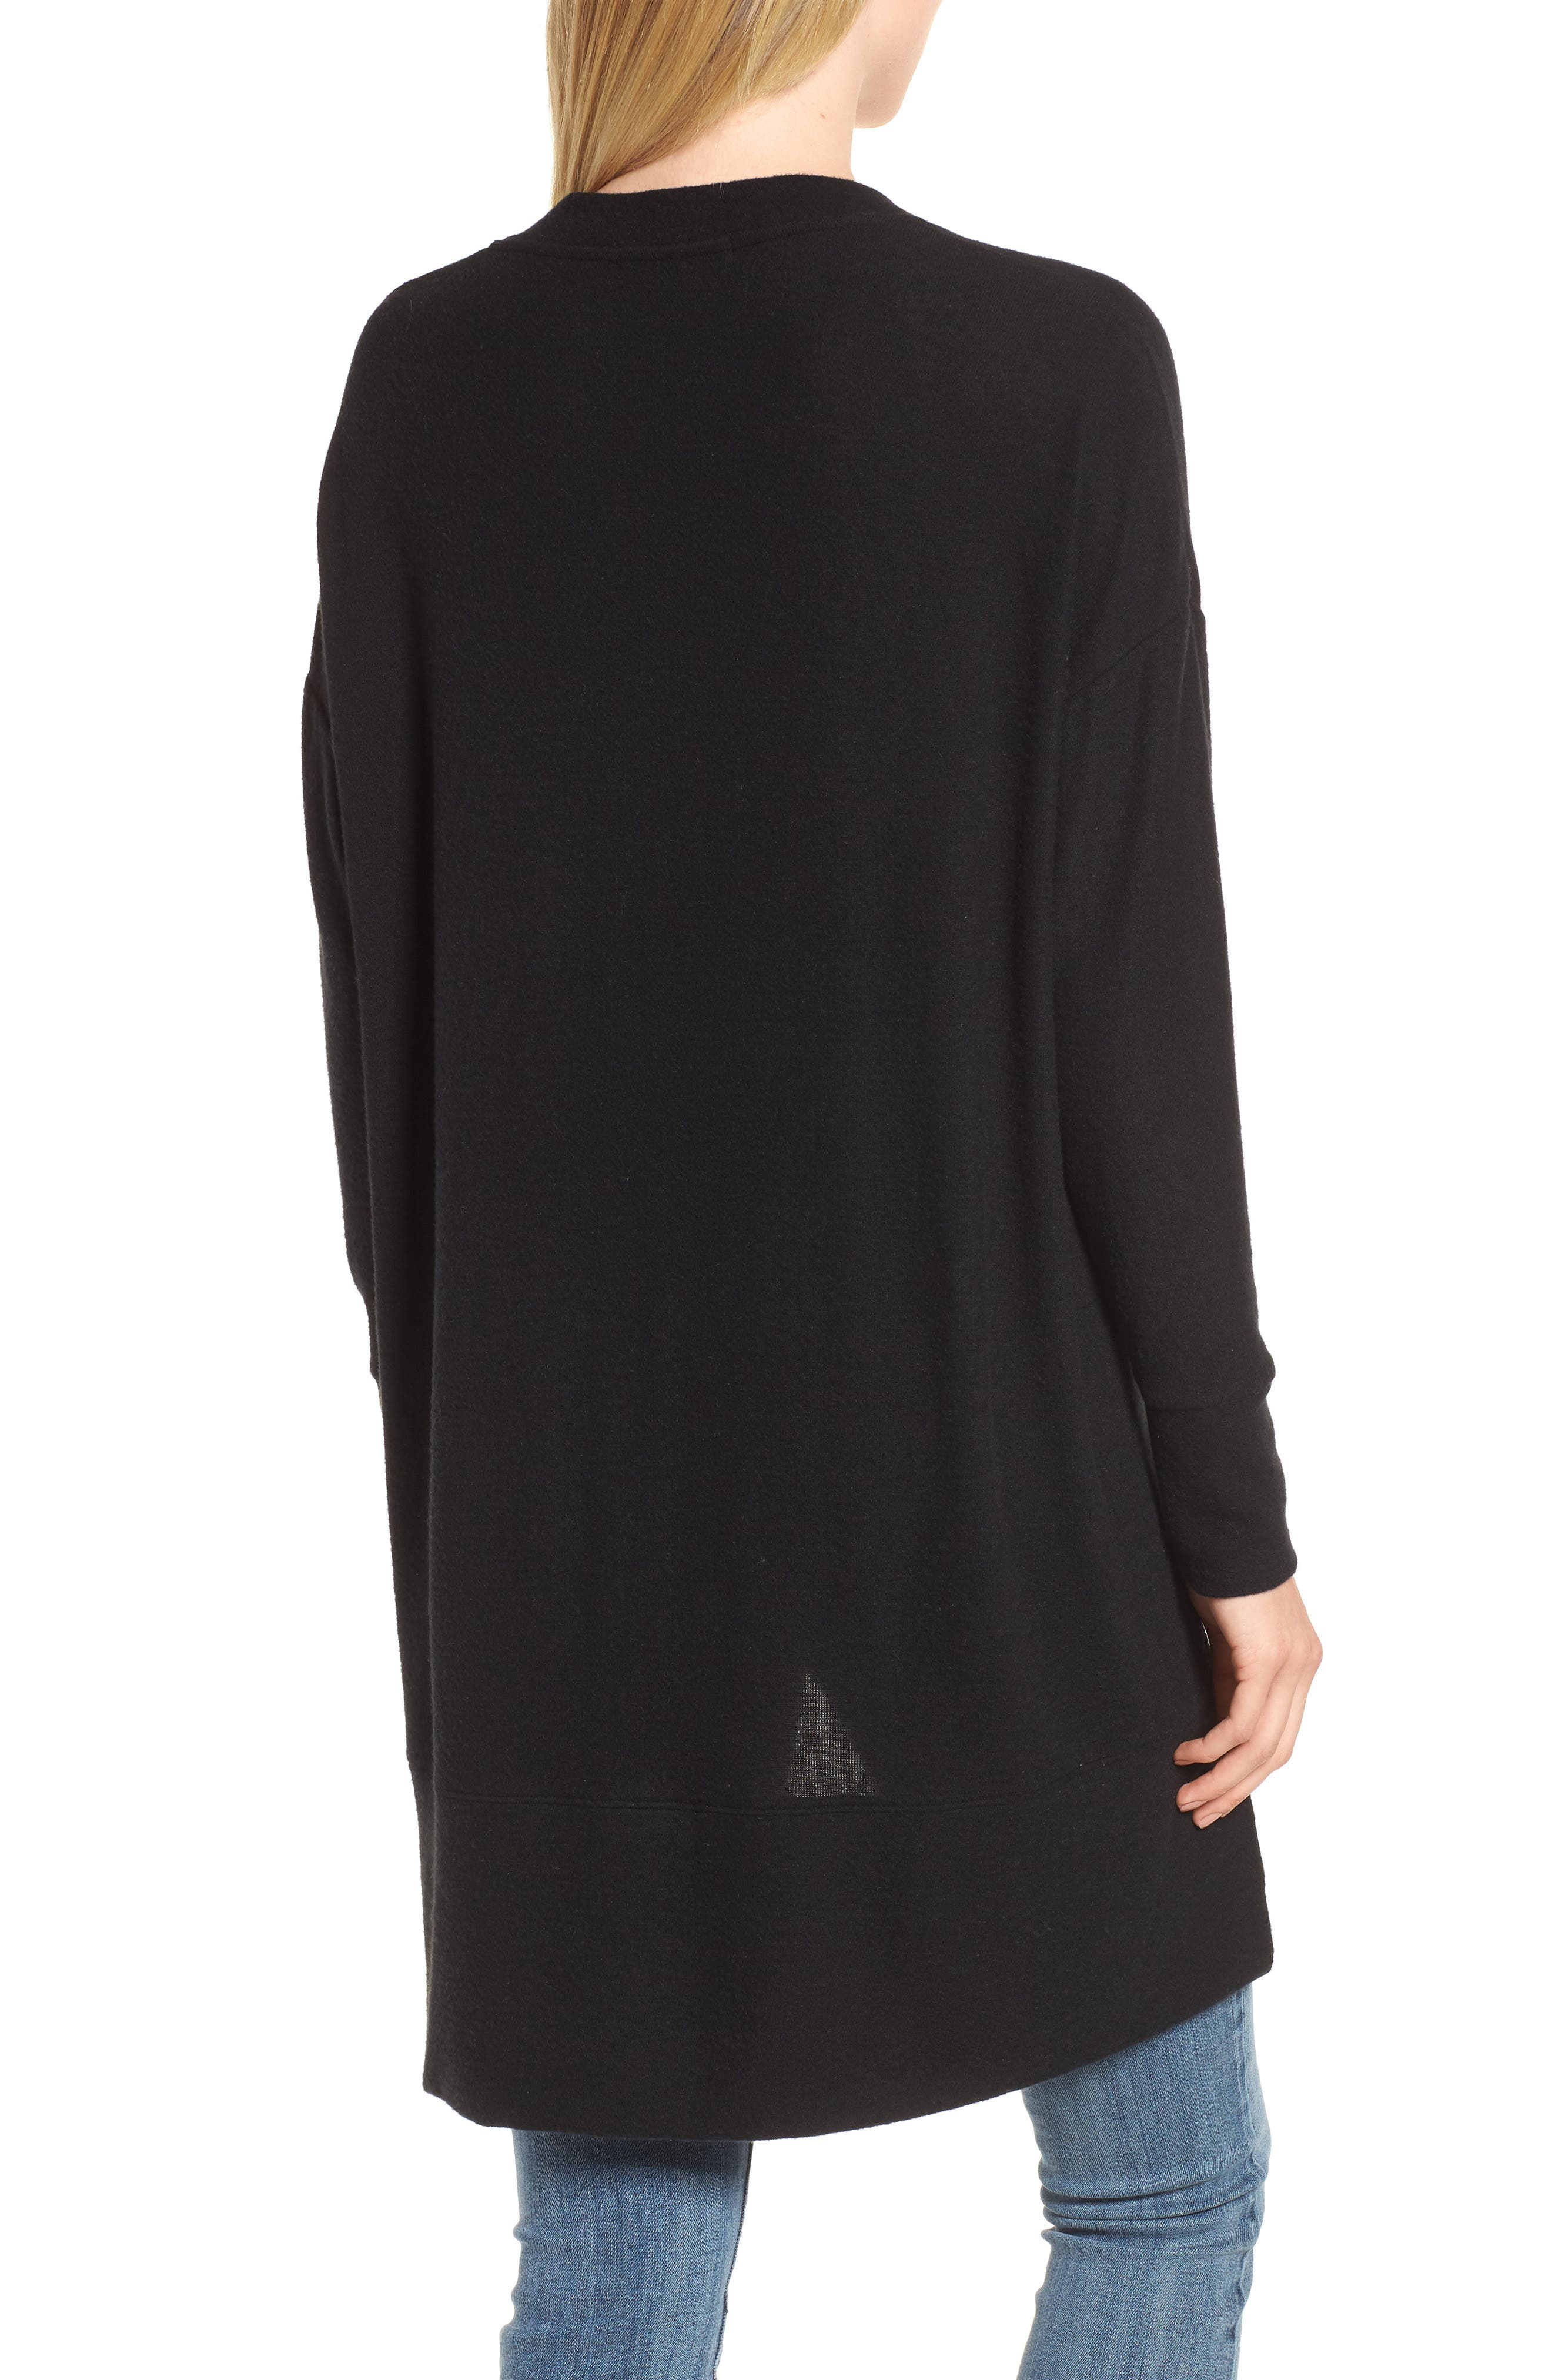 GIBSON, High/Low Easy Cardigan, Alternate thumbnail 2, color, BLACK